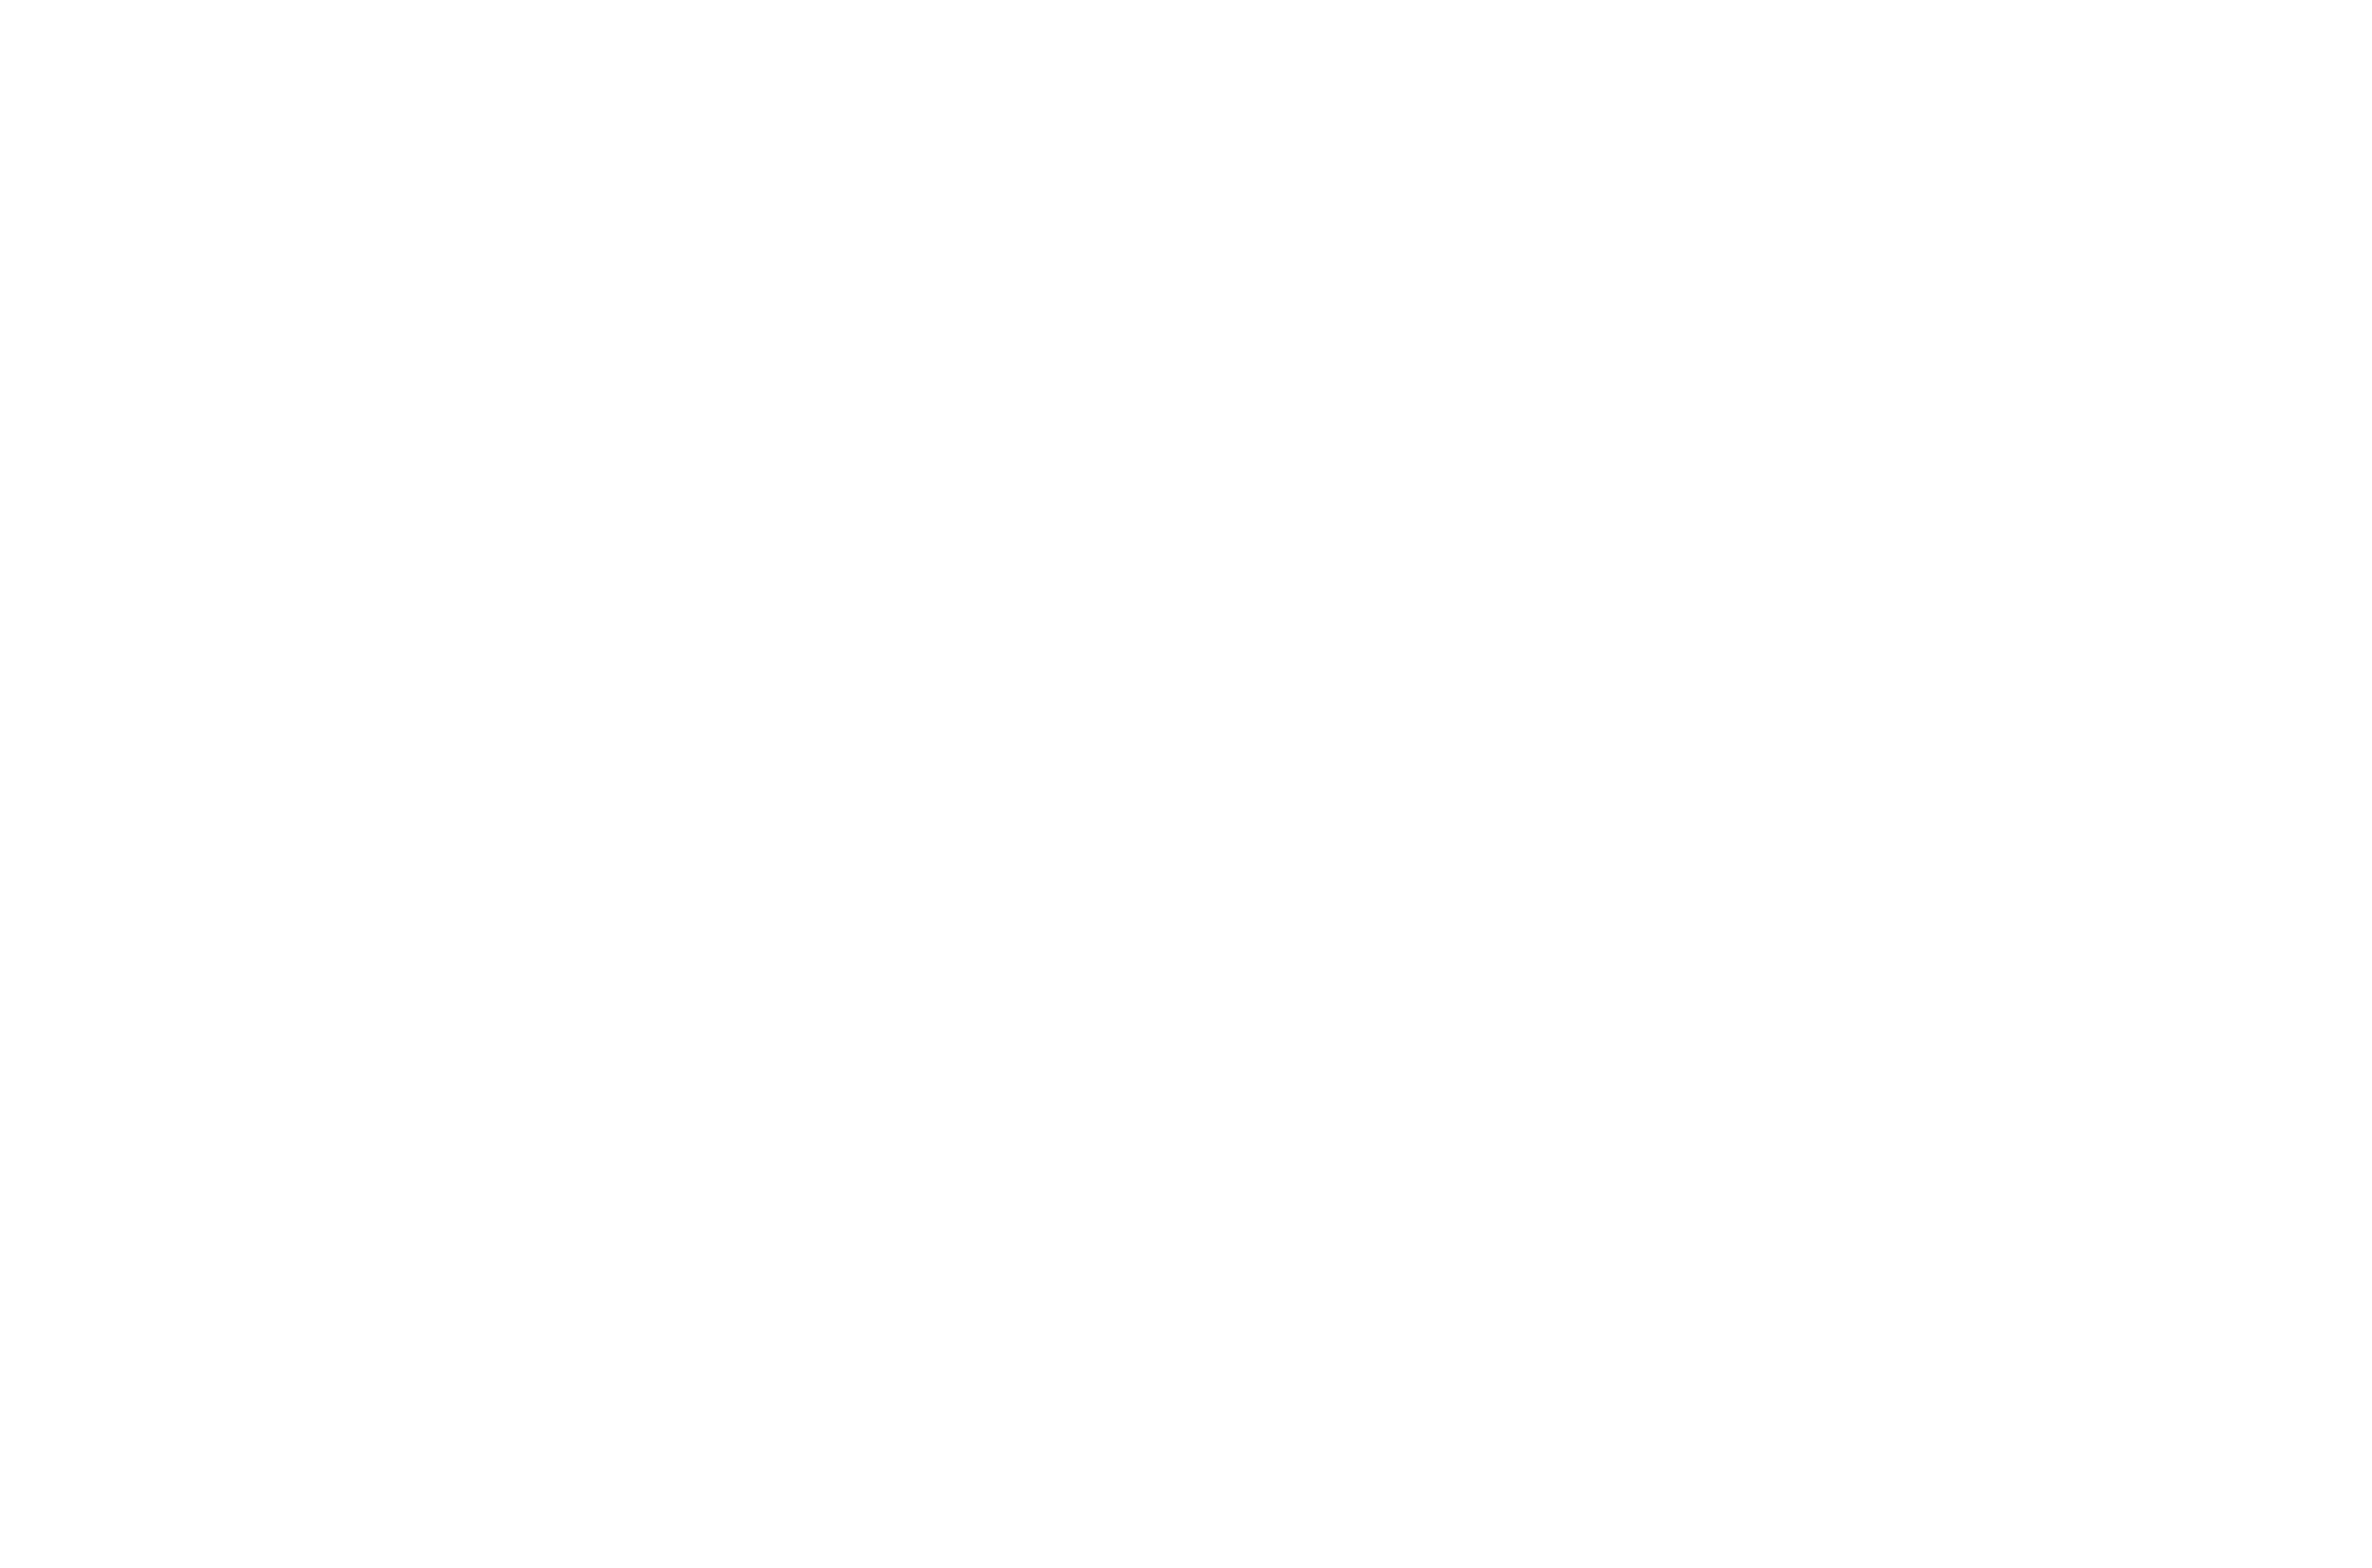 Mobility Finance